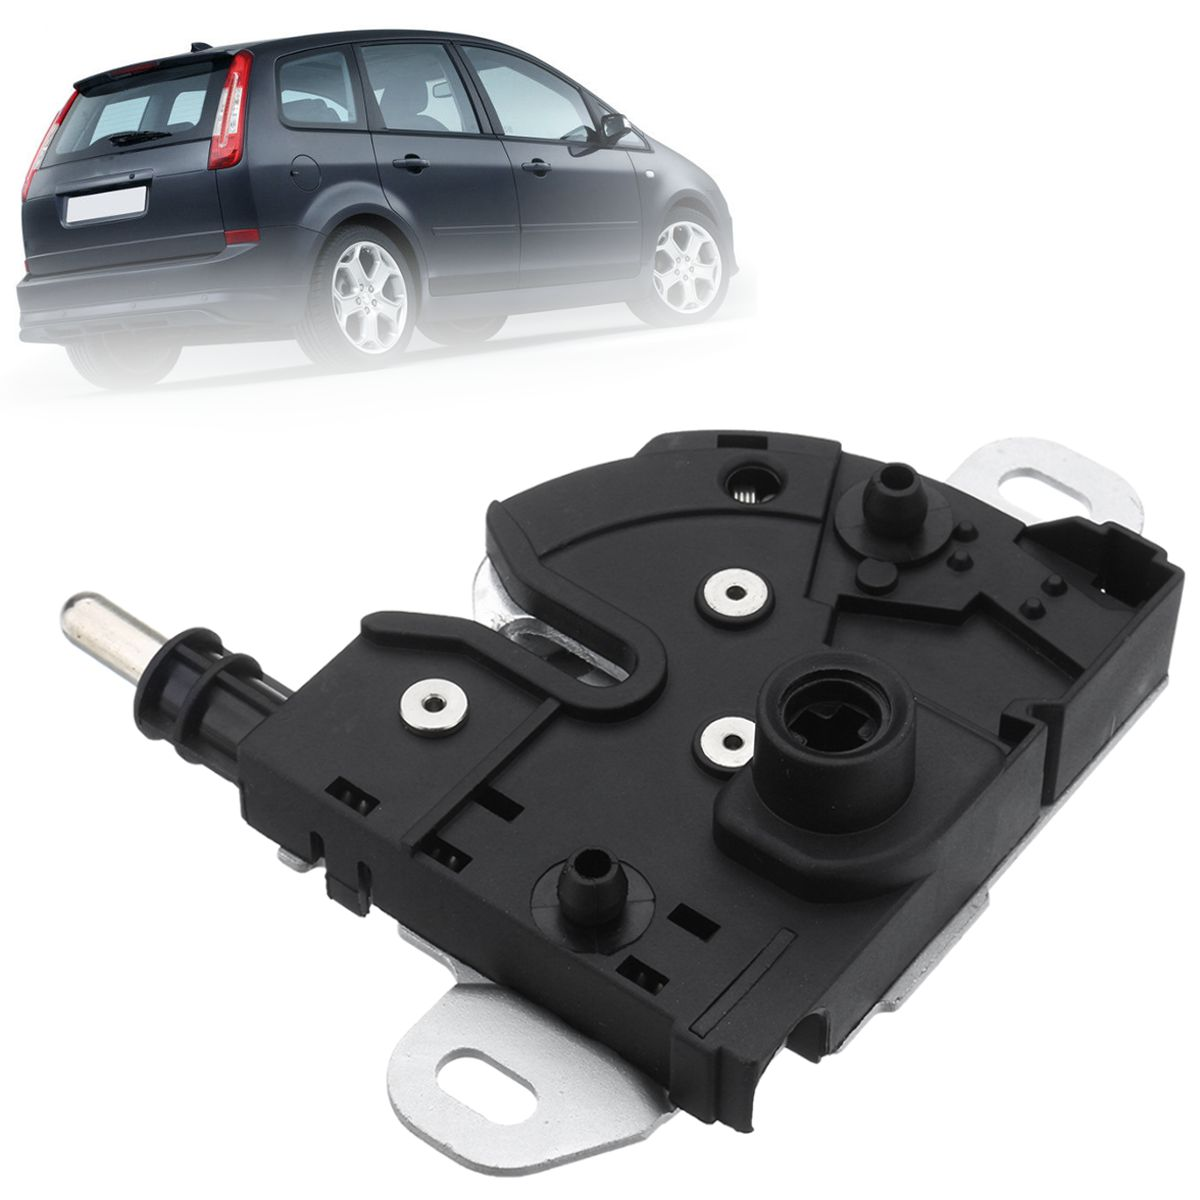 Bonnet Hood Lock Catch Latch Less Anti-theft For Ford -Focus /C-Max Kuga I 4895285